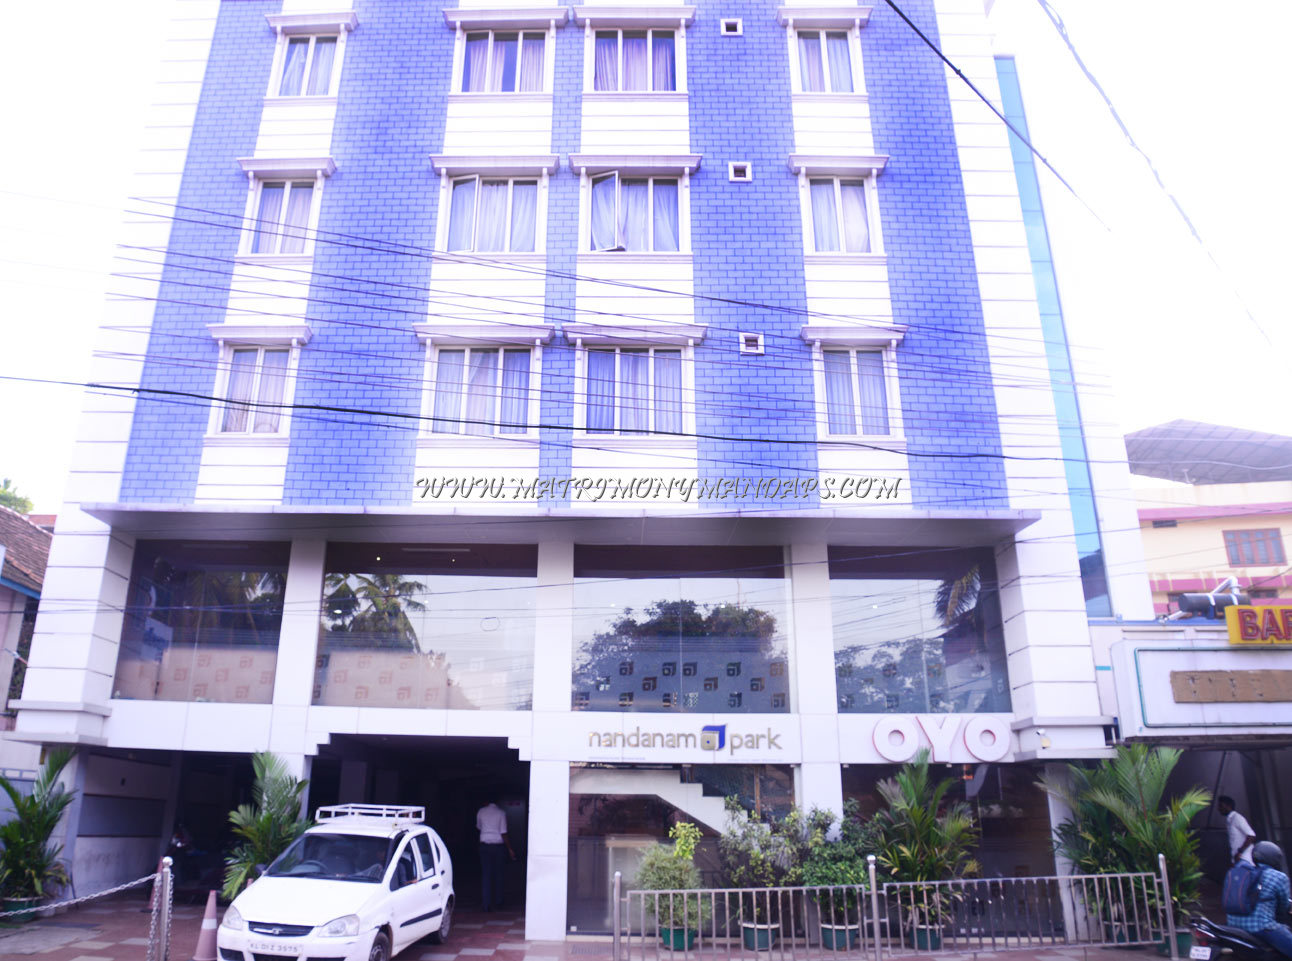 Find More Banquet Halls in Palayam